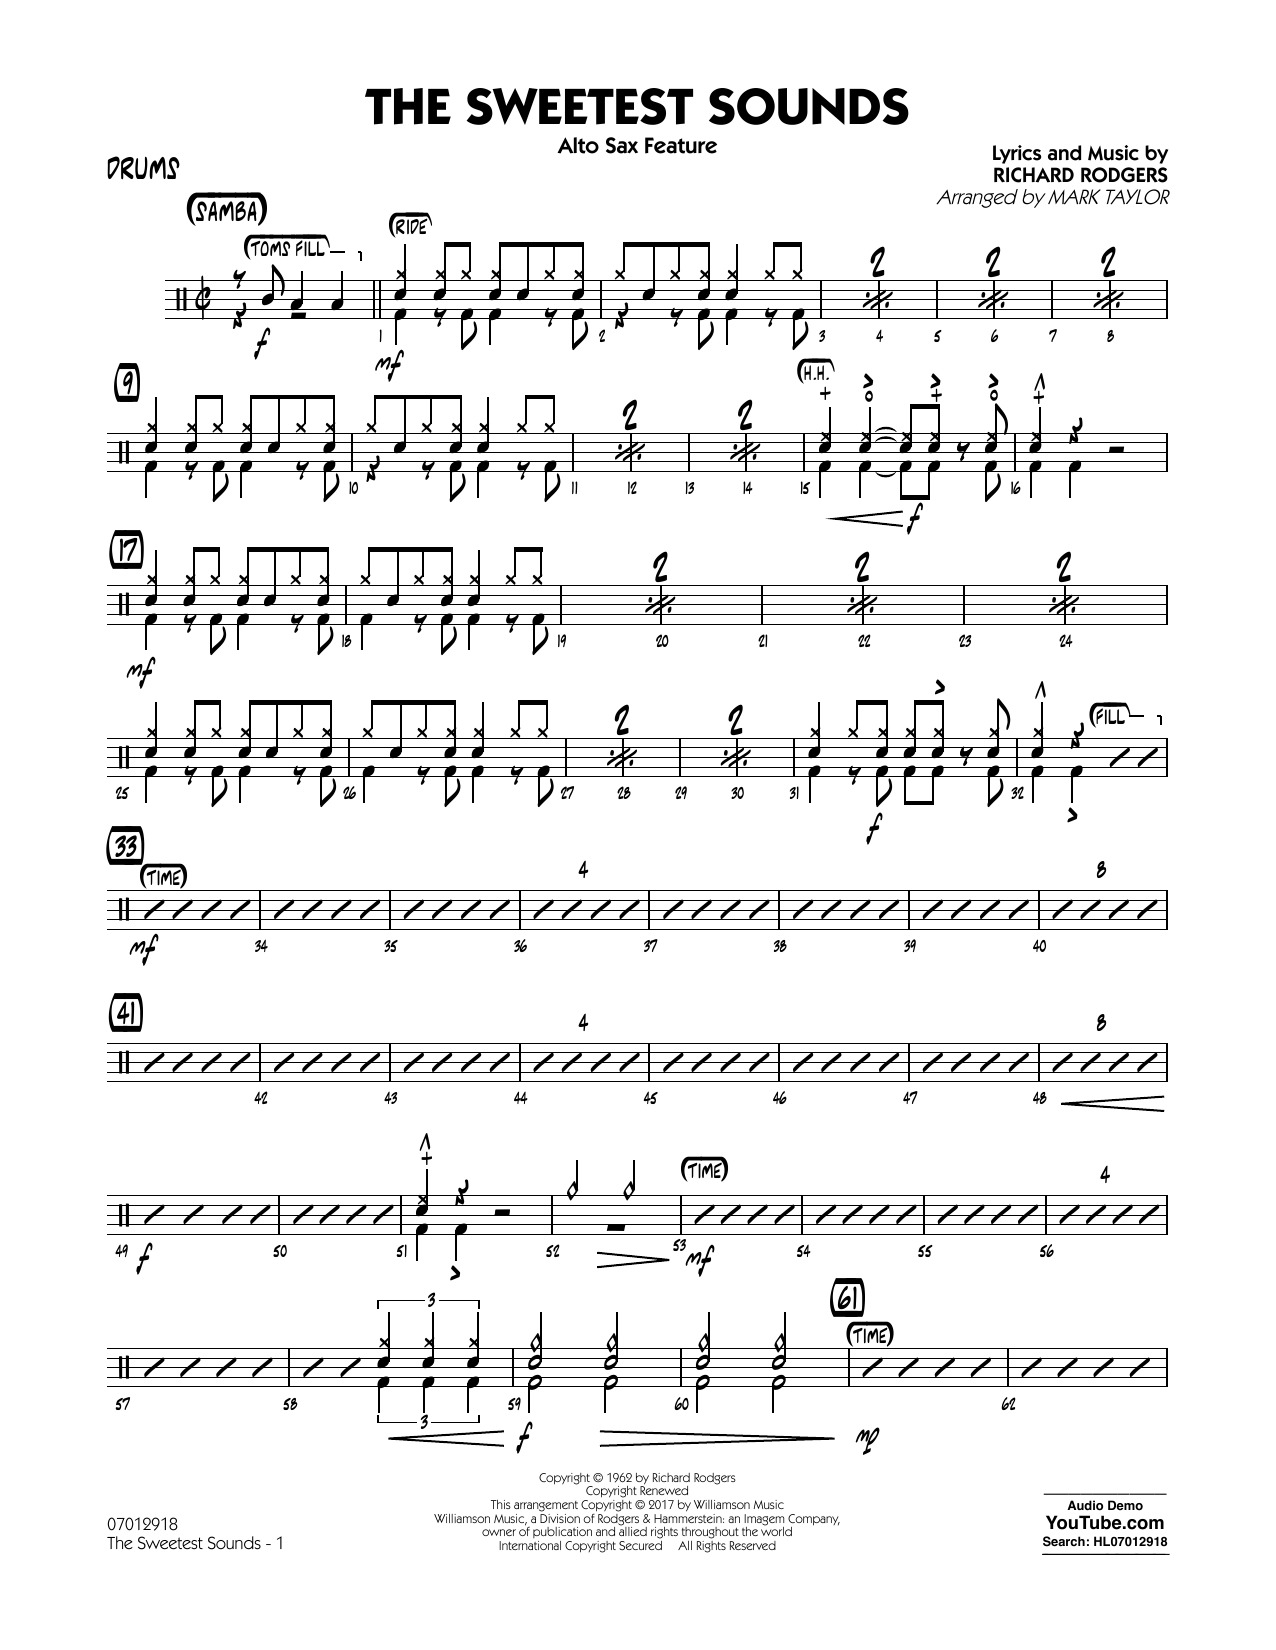 The Sweetest Sounds (Alto Sax Feature) - Drums Sheet Music